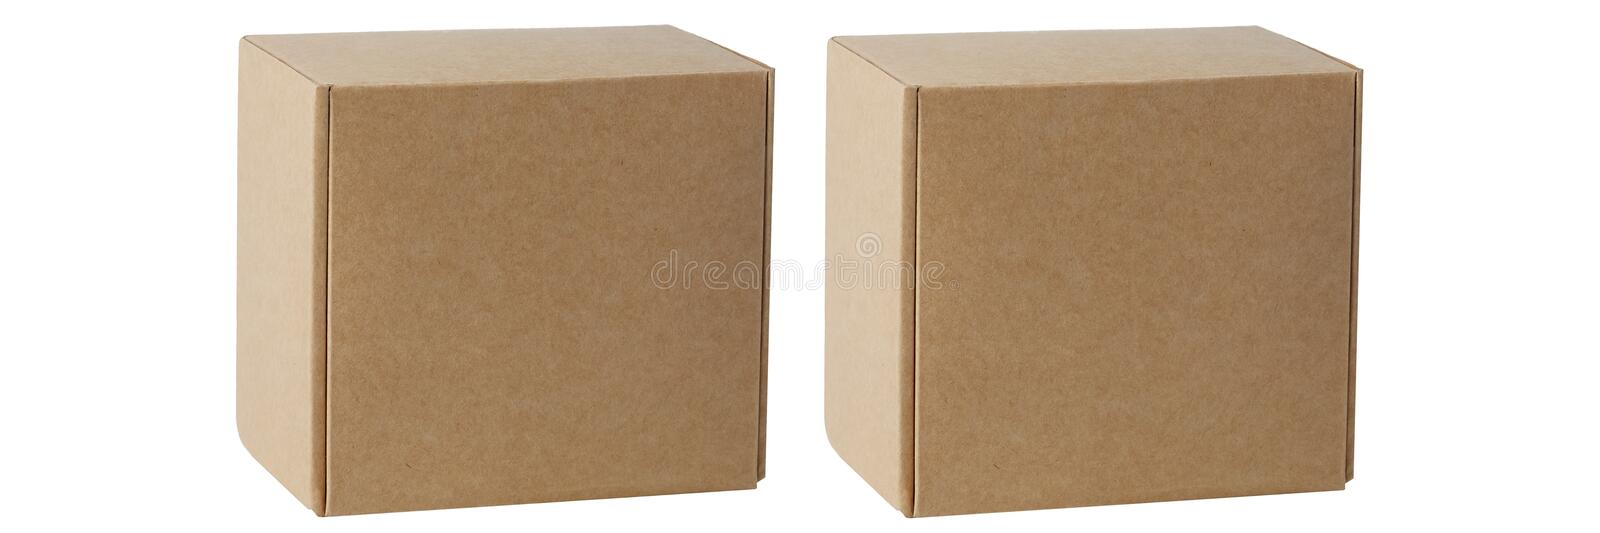 Cardboard boxes for goods on a white background. Different size. Isolated on white background.  stock photos